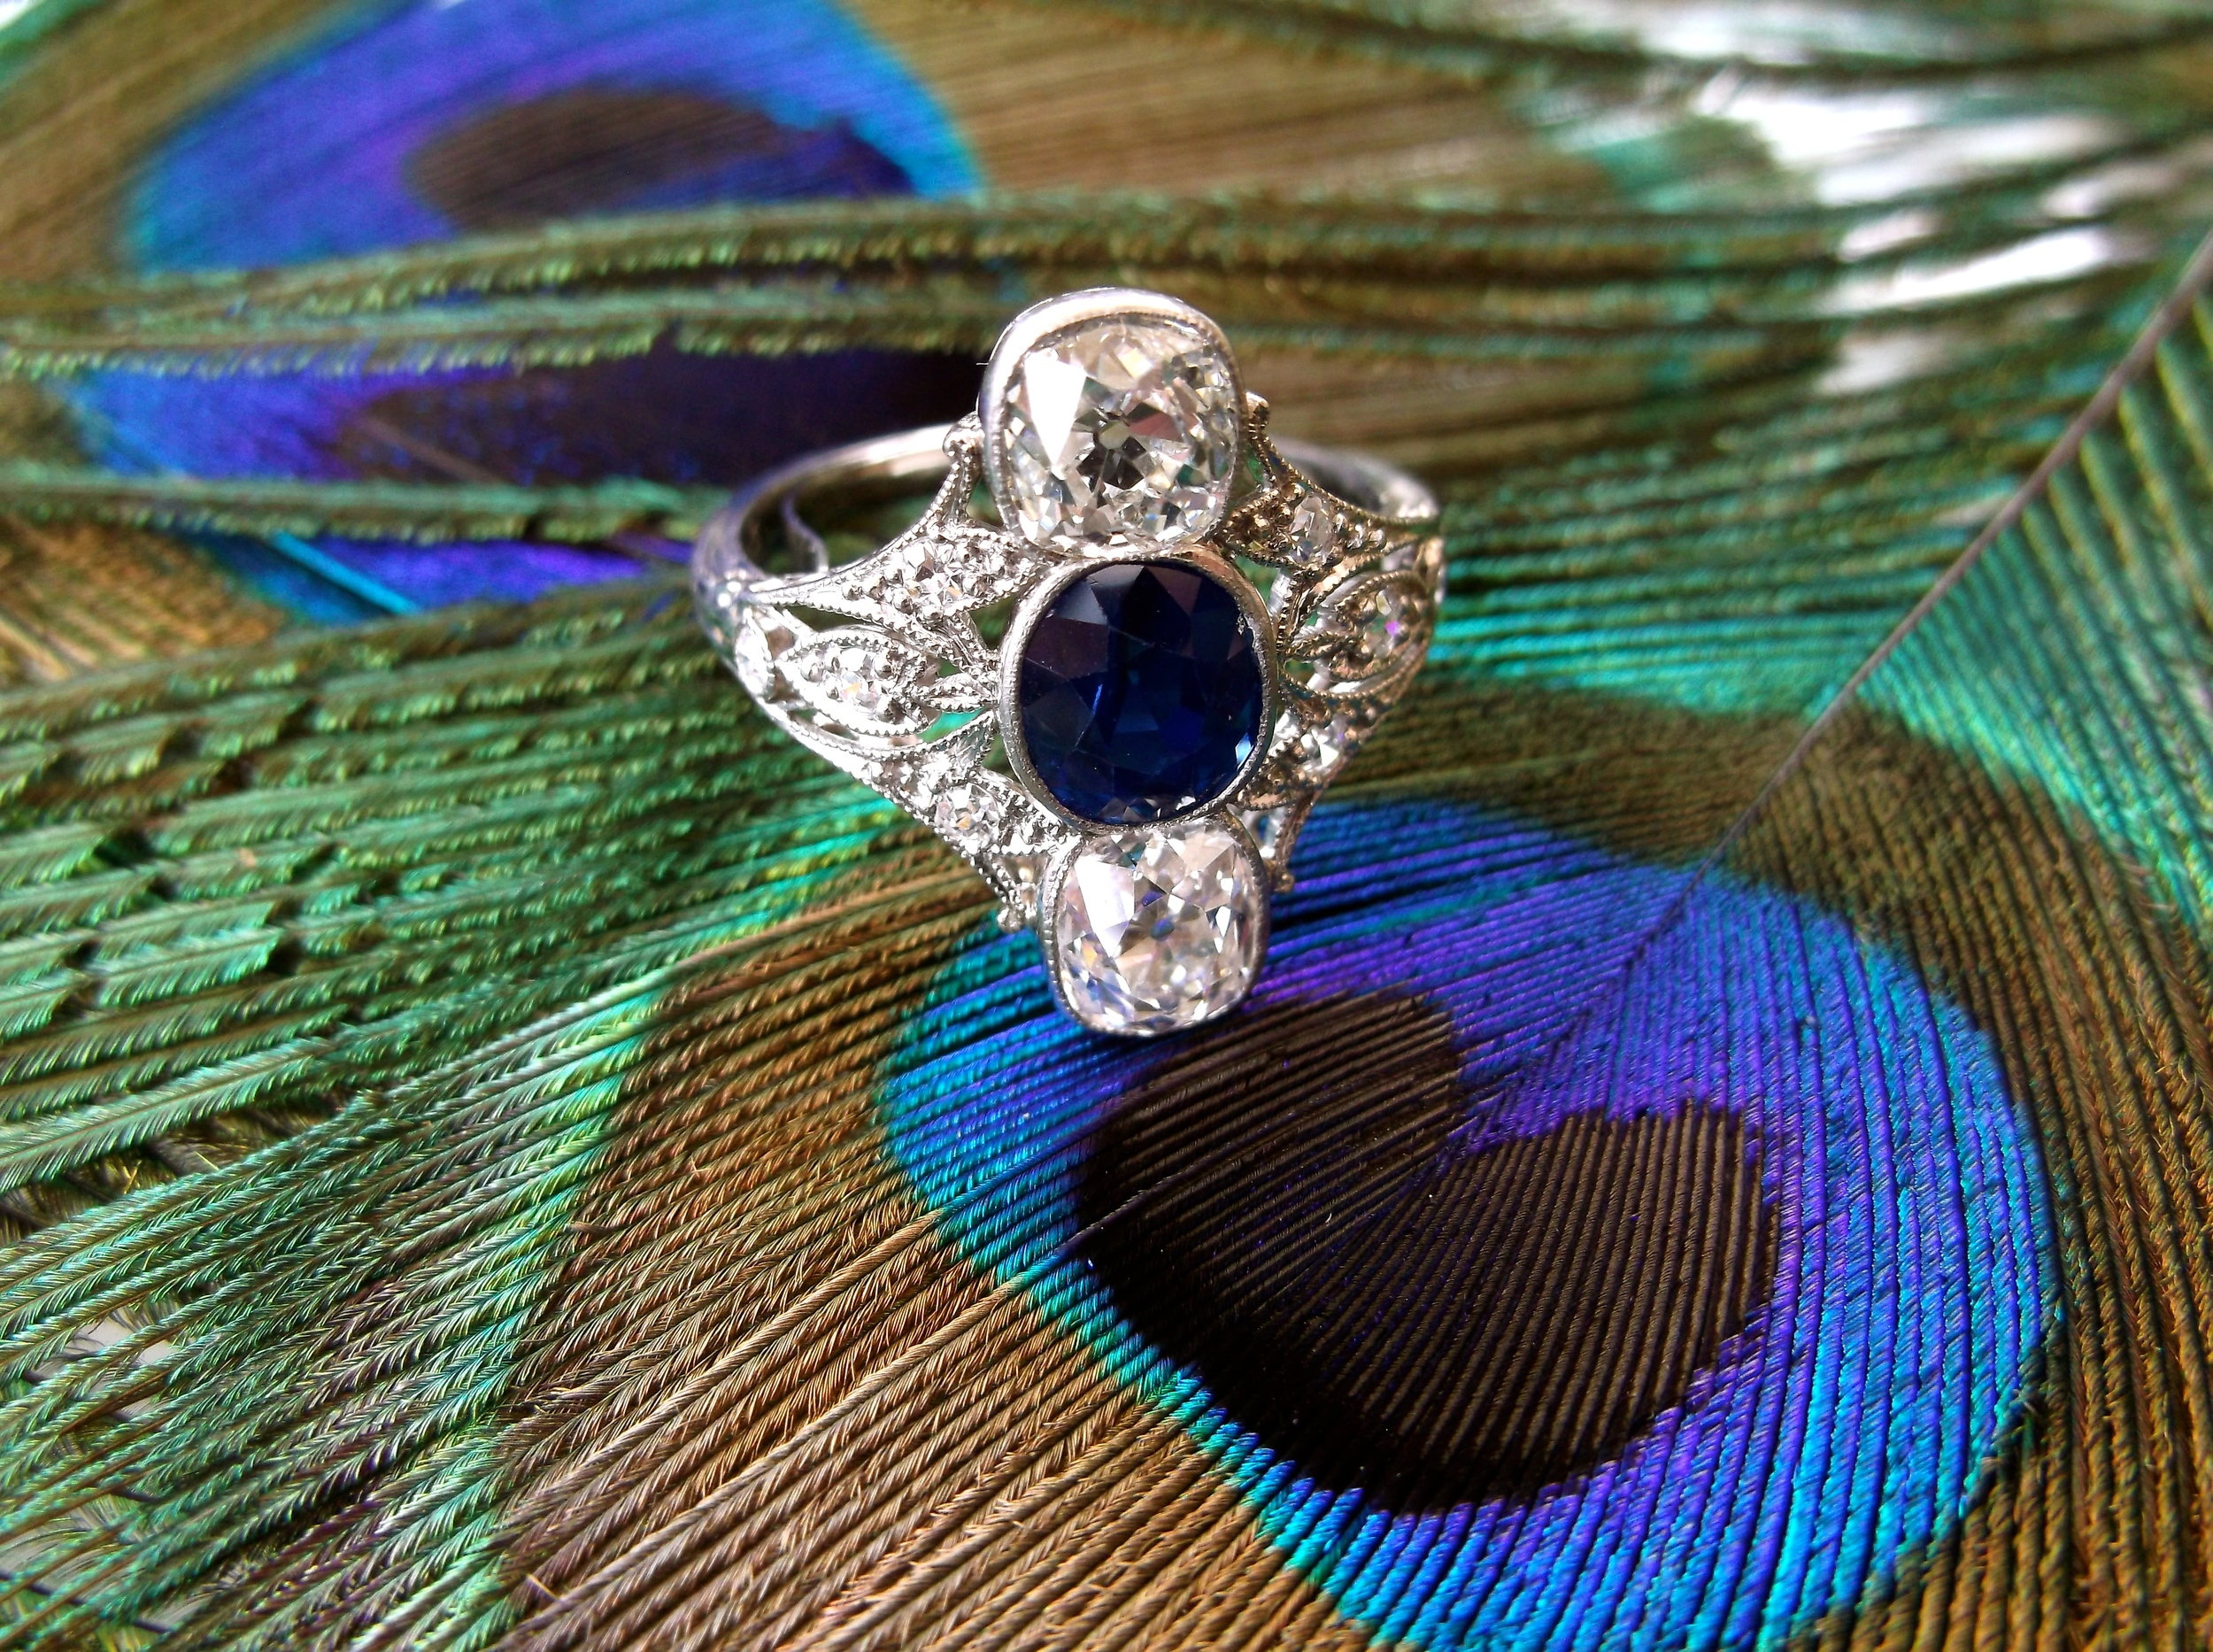 SOLD - Jaw dropping Art Deco Old Mine cut diamond and sapphire ring set in platinum. (0.88 carats between the two larger Old Mine cut diamonds and a 1.20 carat sapphire in the center)